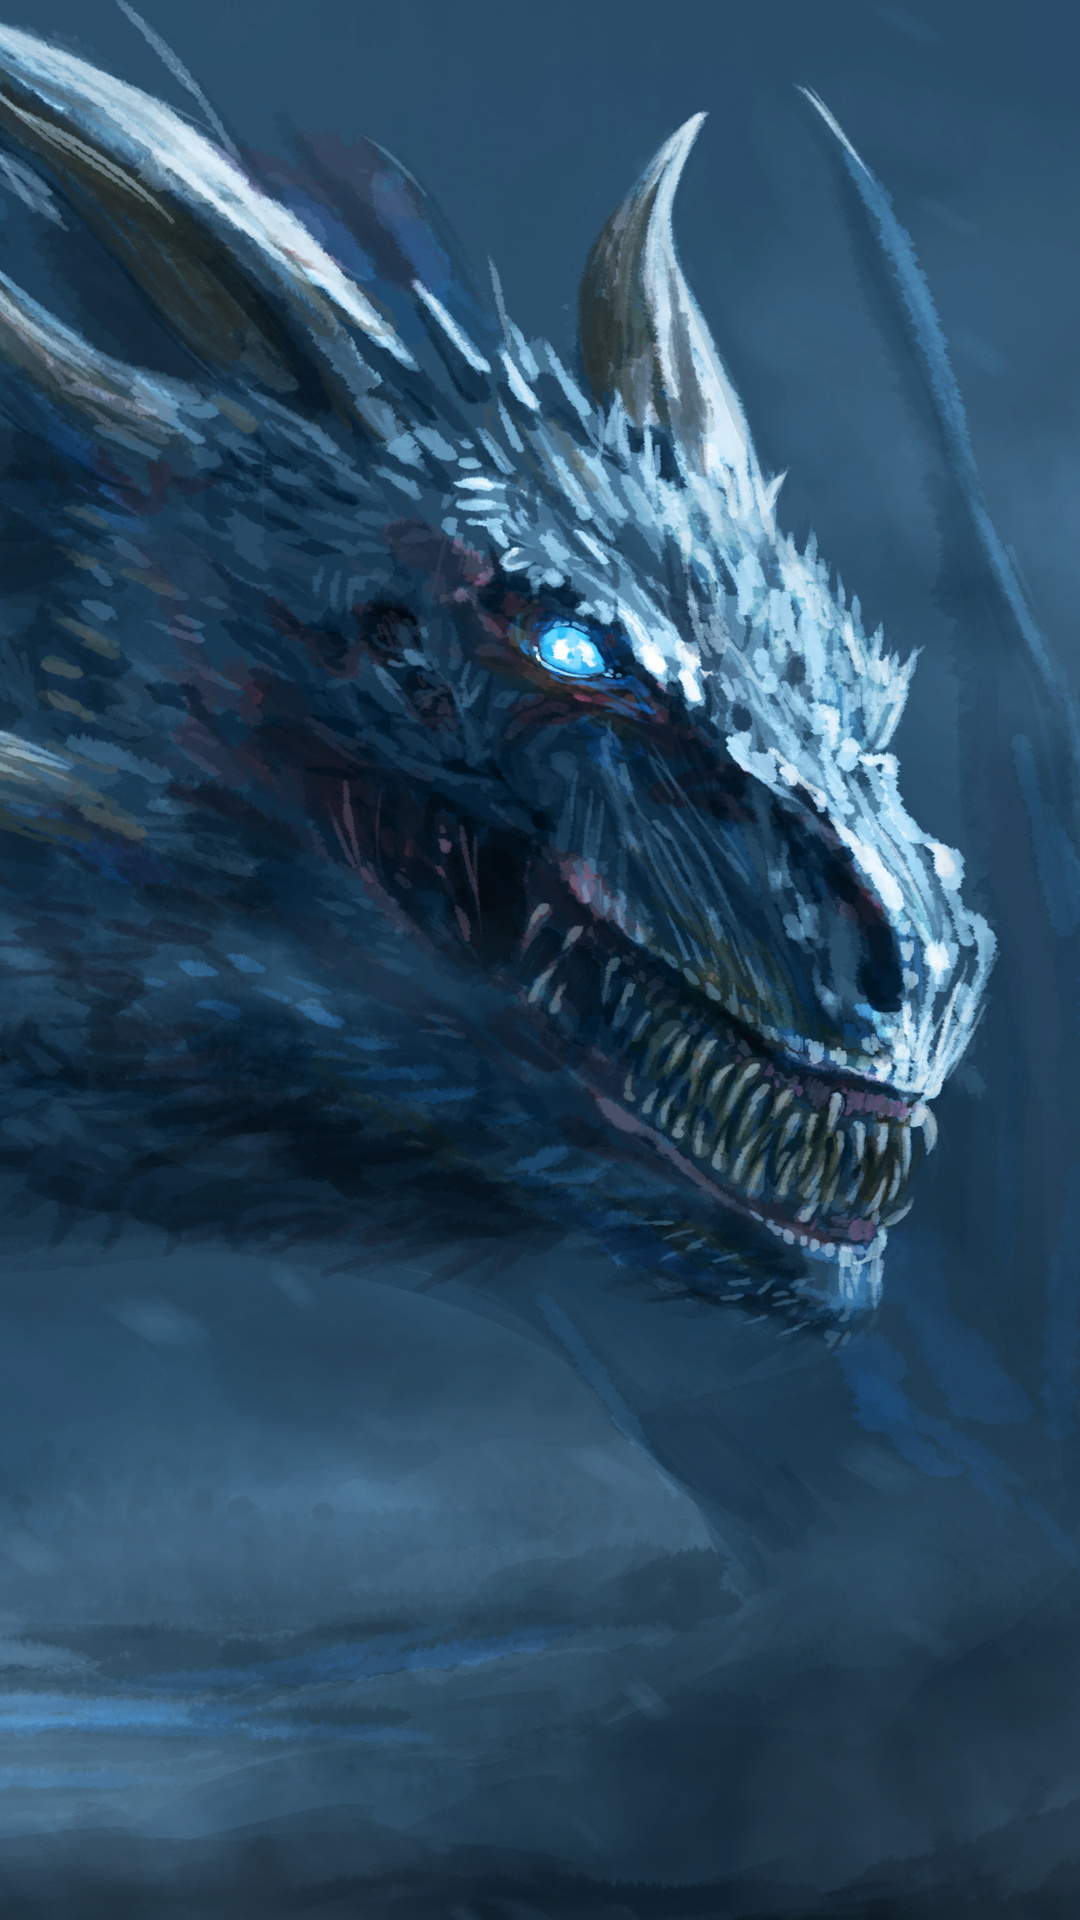 white-dragon-of-night-king-qa.jpg